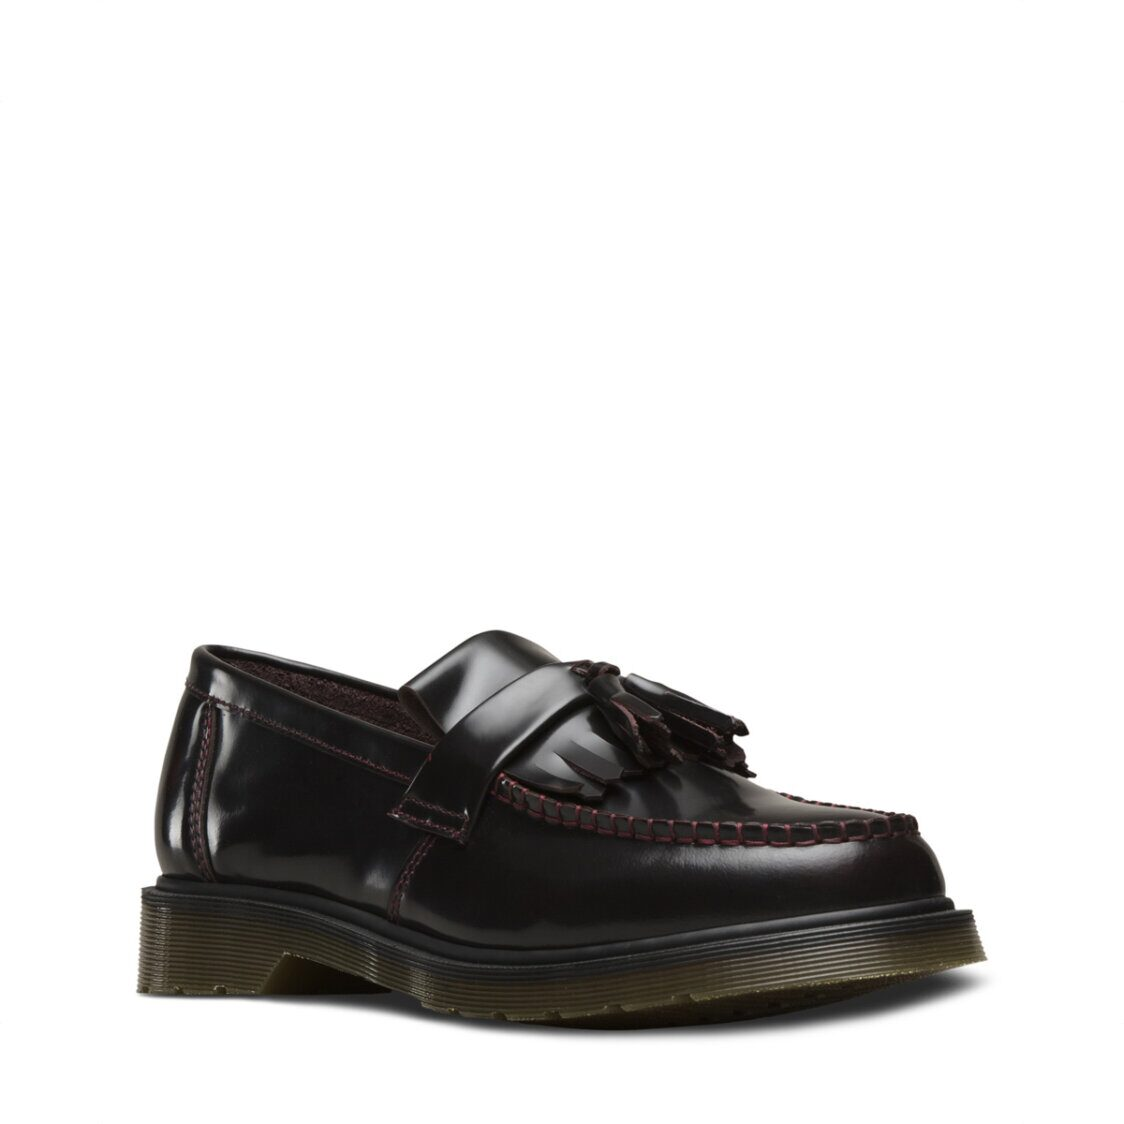 Dr Marten Adrian Arcadia Leather Tassle Loafers